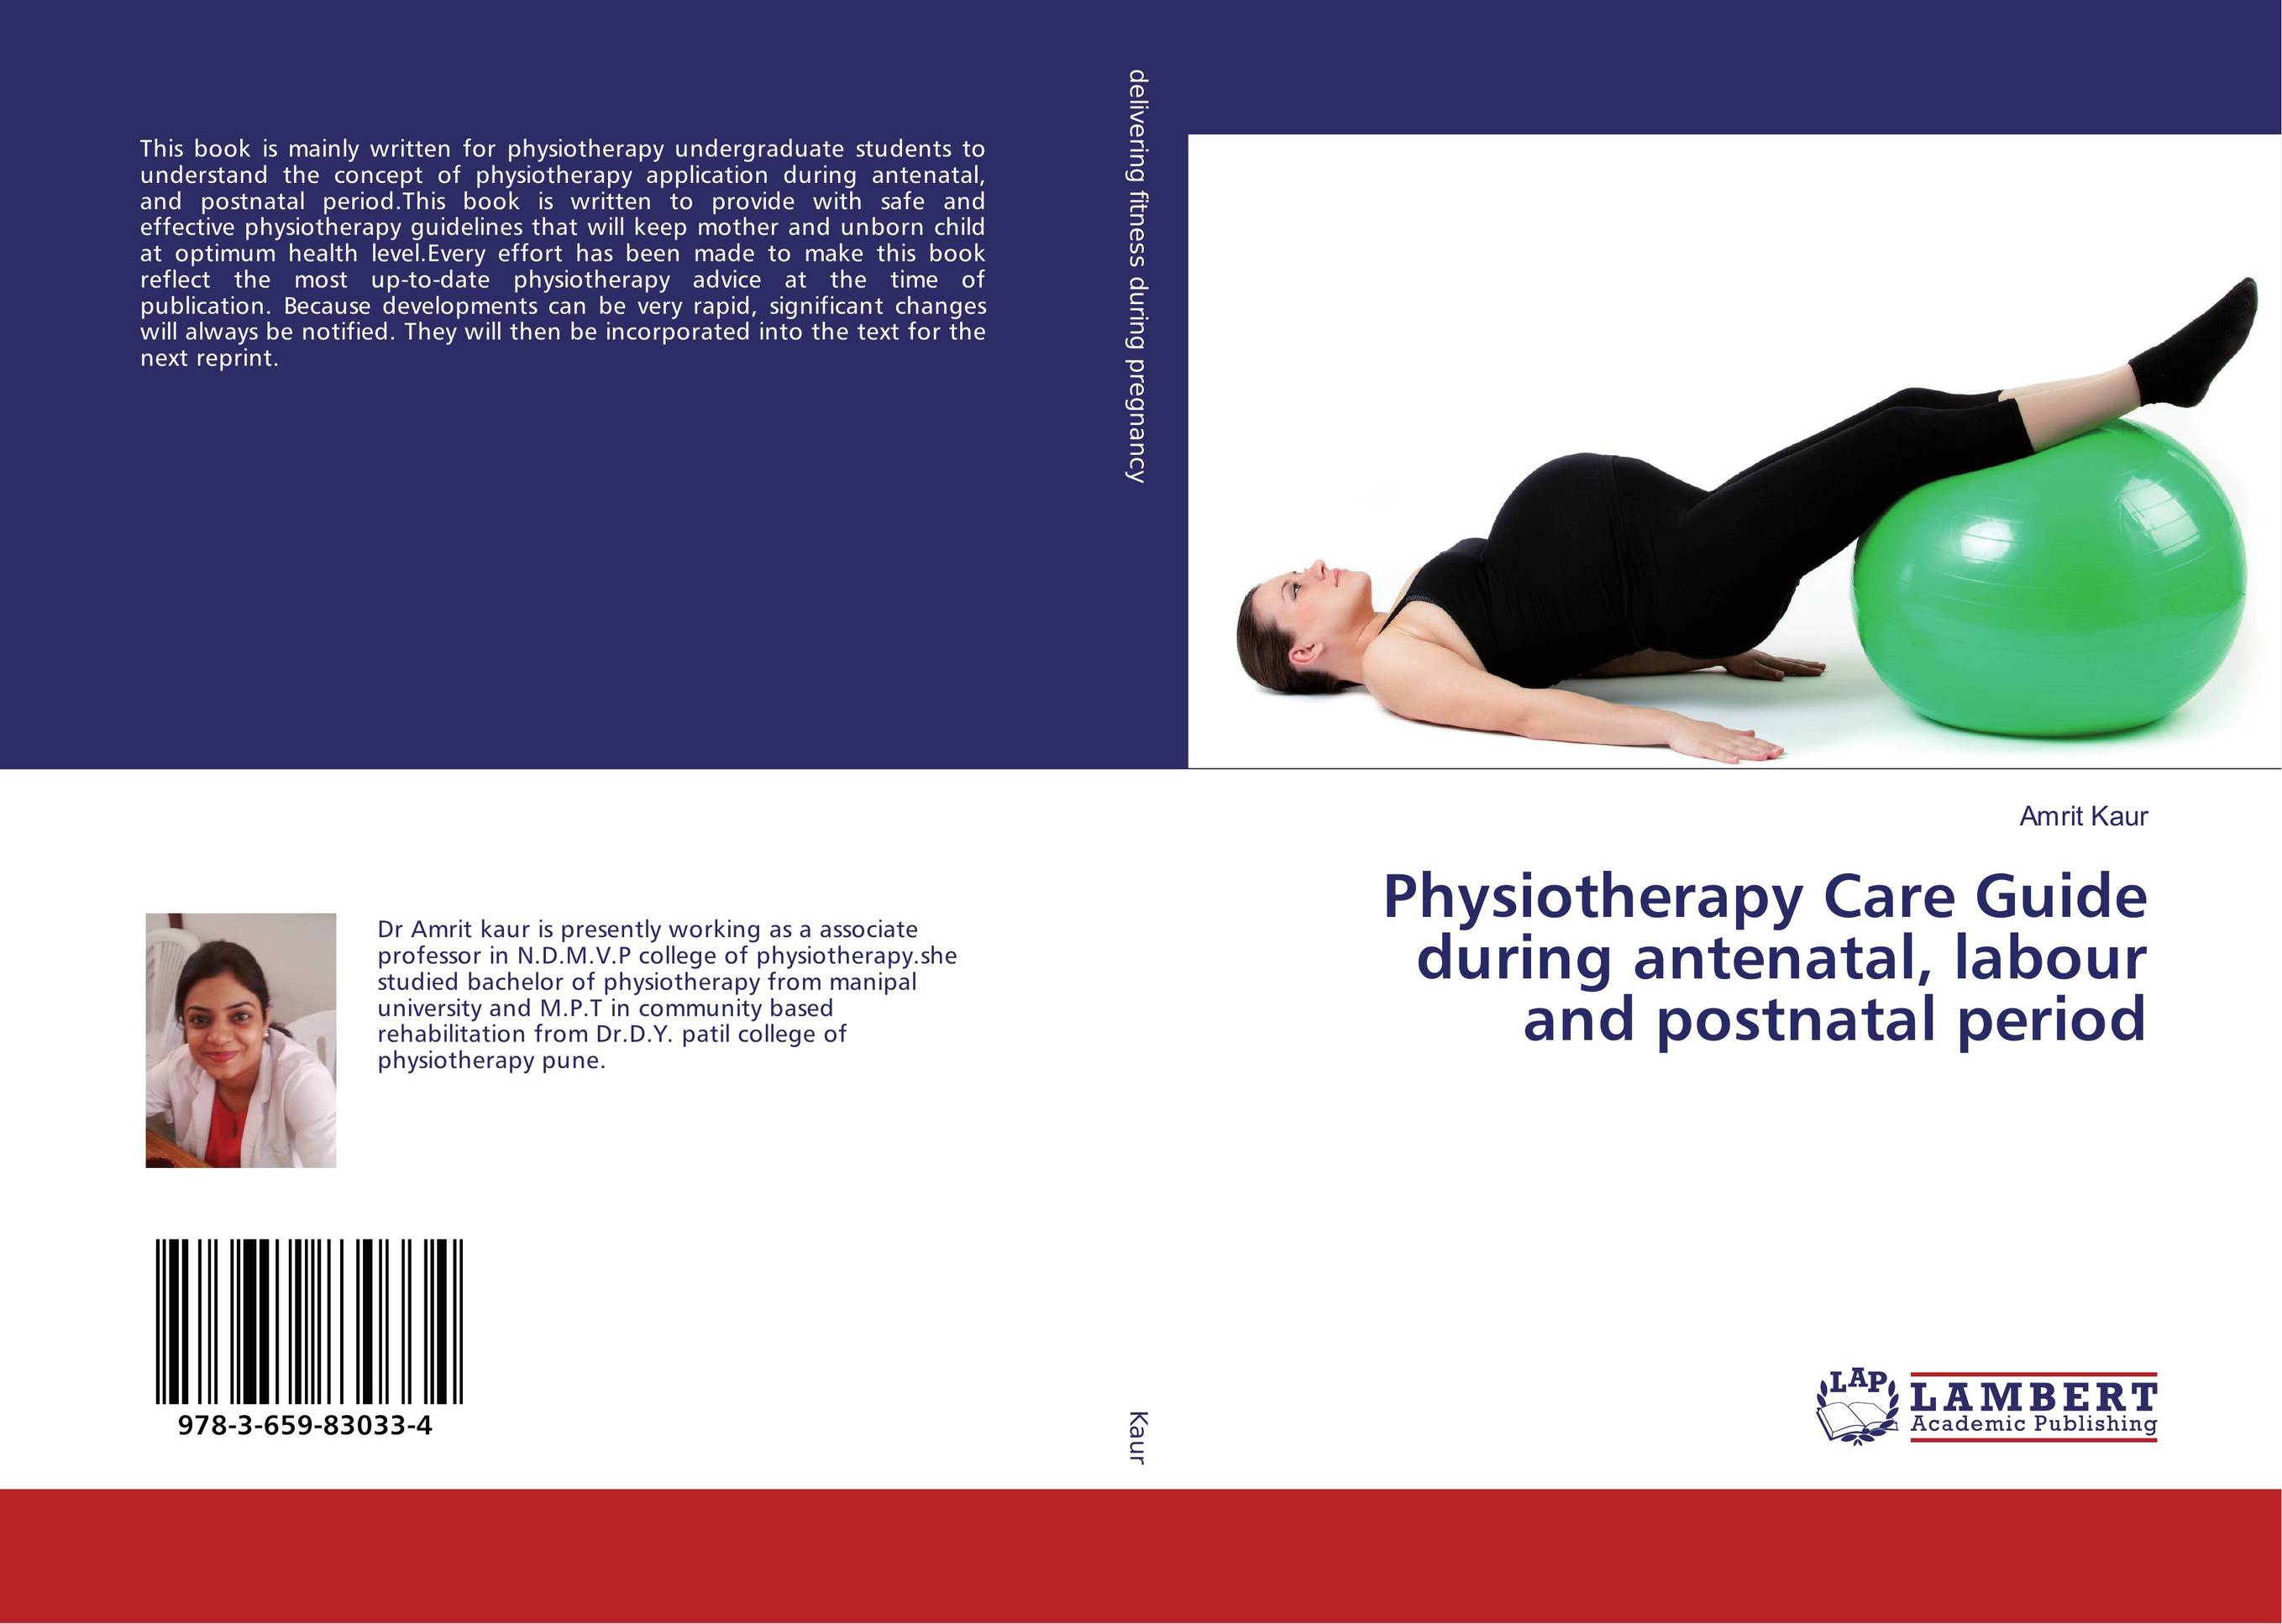 Physiotherapy Care Guide during antenatal, labour and postnatal period the complete guide to aqua exercise for pregnancy and postnatal health